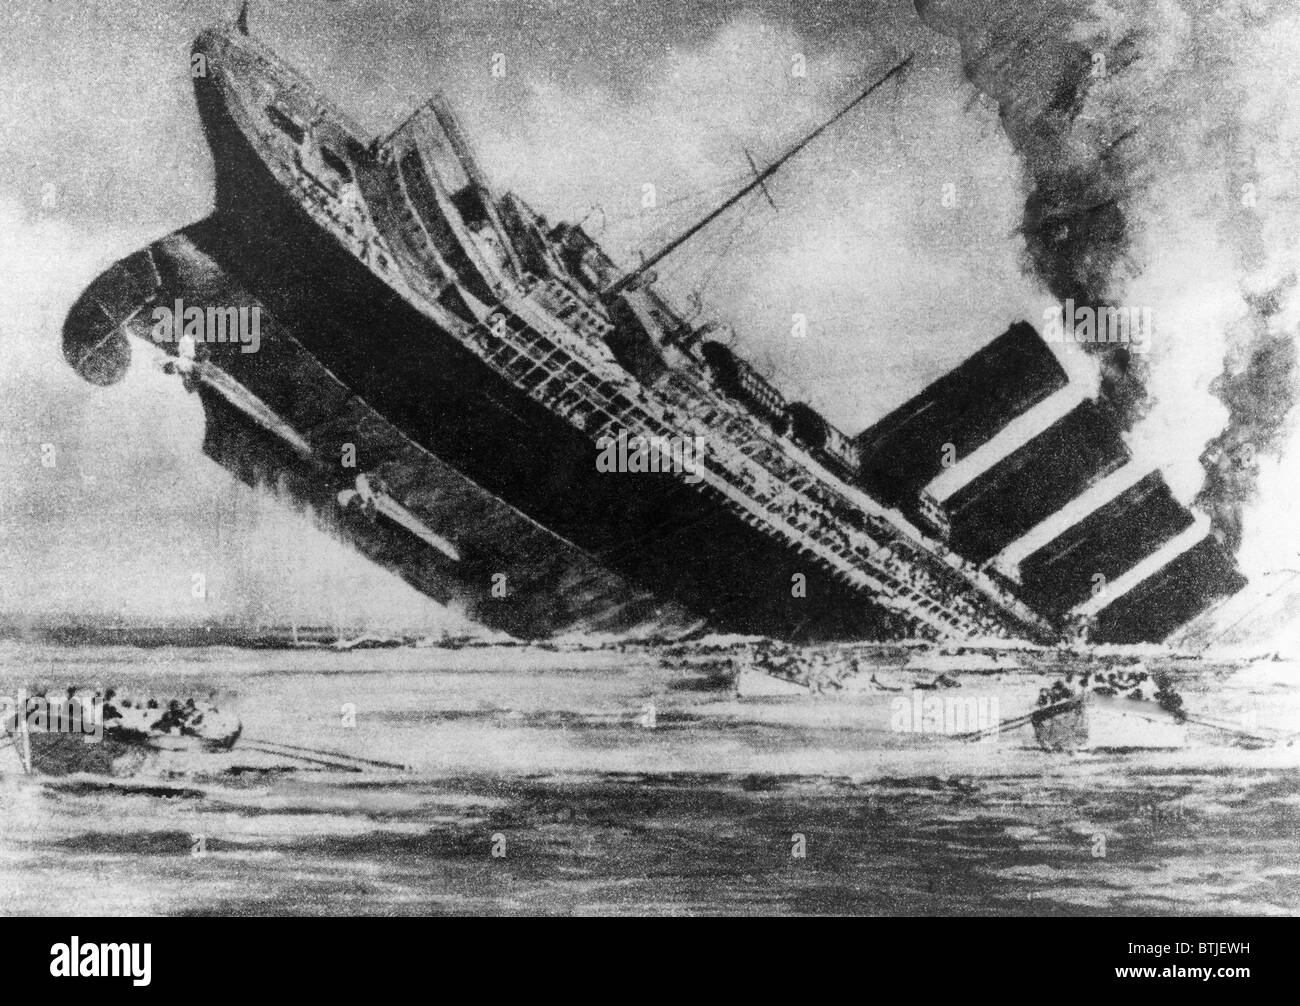 1 what were the reasons for the sinking of the vessels What caused the united states to break its neutrality and enter world war i was b the constant german sinking of trading vessels resulting in the loss of lives germans were intent on keeping their submarine policy that no trading can occur next to it, so the americans decided to interfere.